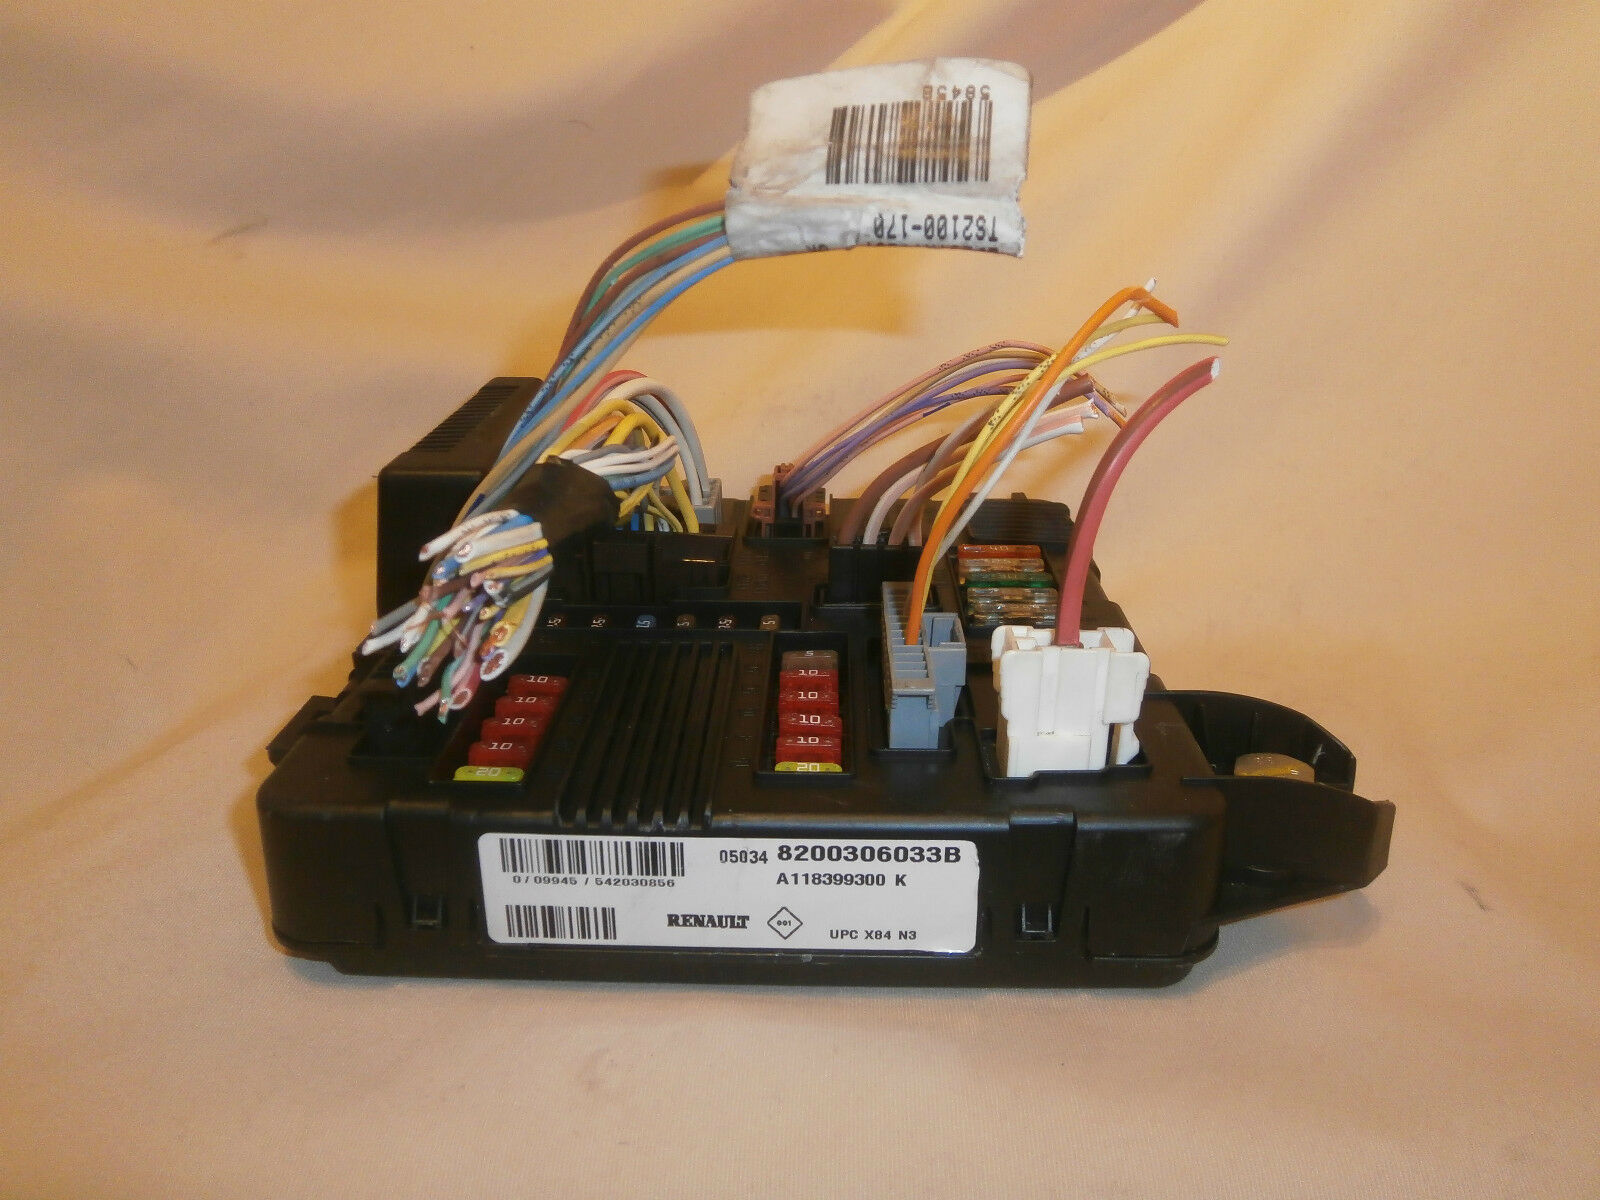 Renault Megane Ii Fusebox Body Control 8200306033b 6399 Fuse Box On Scenic 2004 1 Of 3 See More